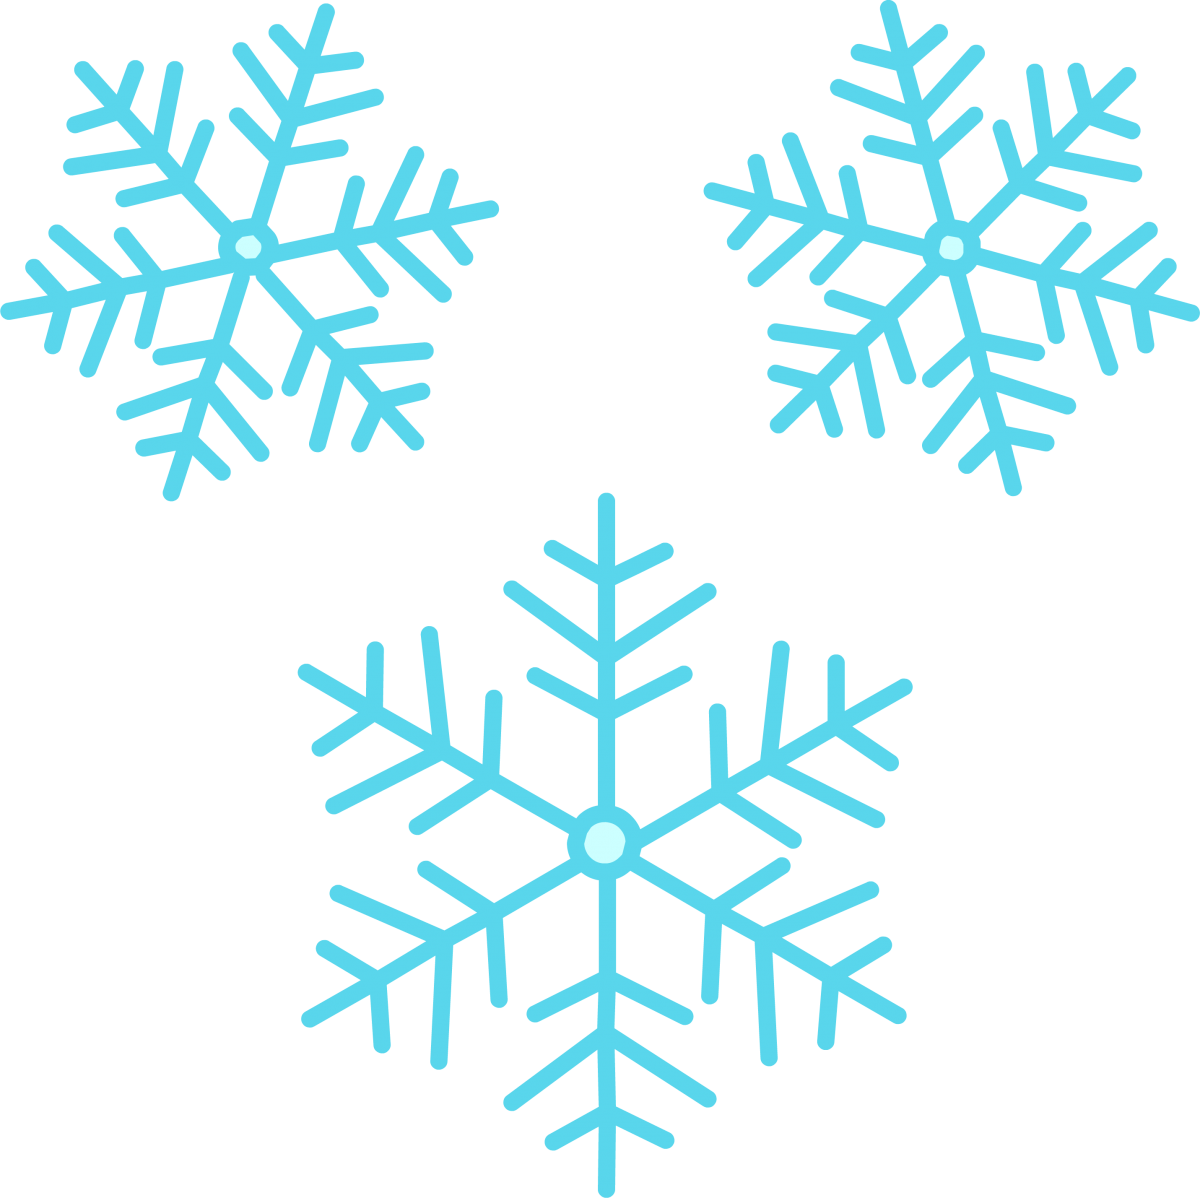 Snowflake and wind clipart graphic black and white download Theme-Based Multi-Sensory Activities for Students with Visual ... graphic black and white download